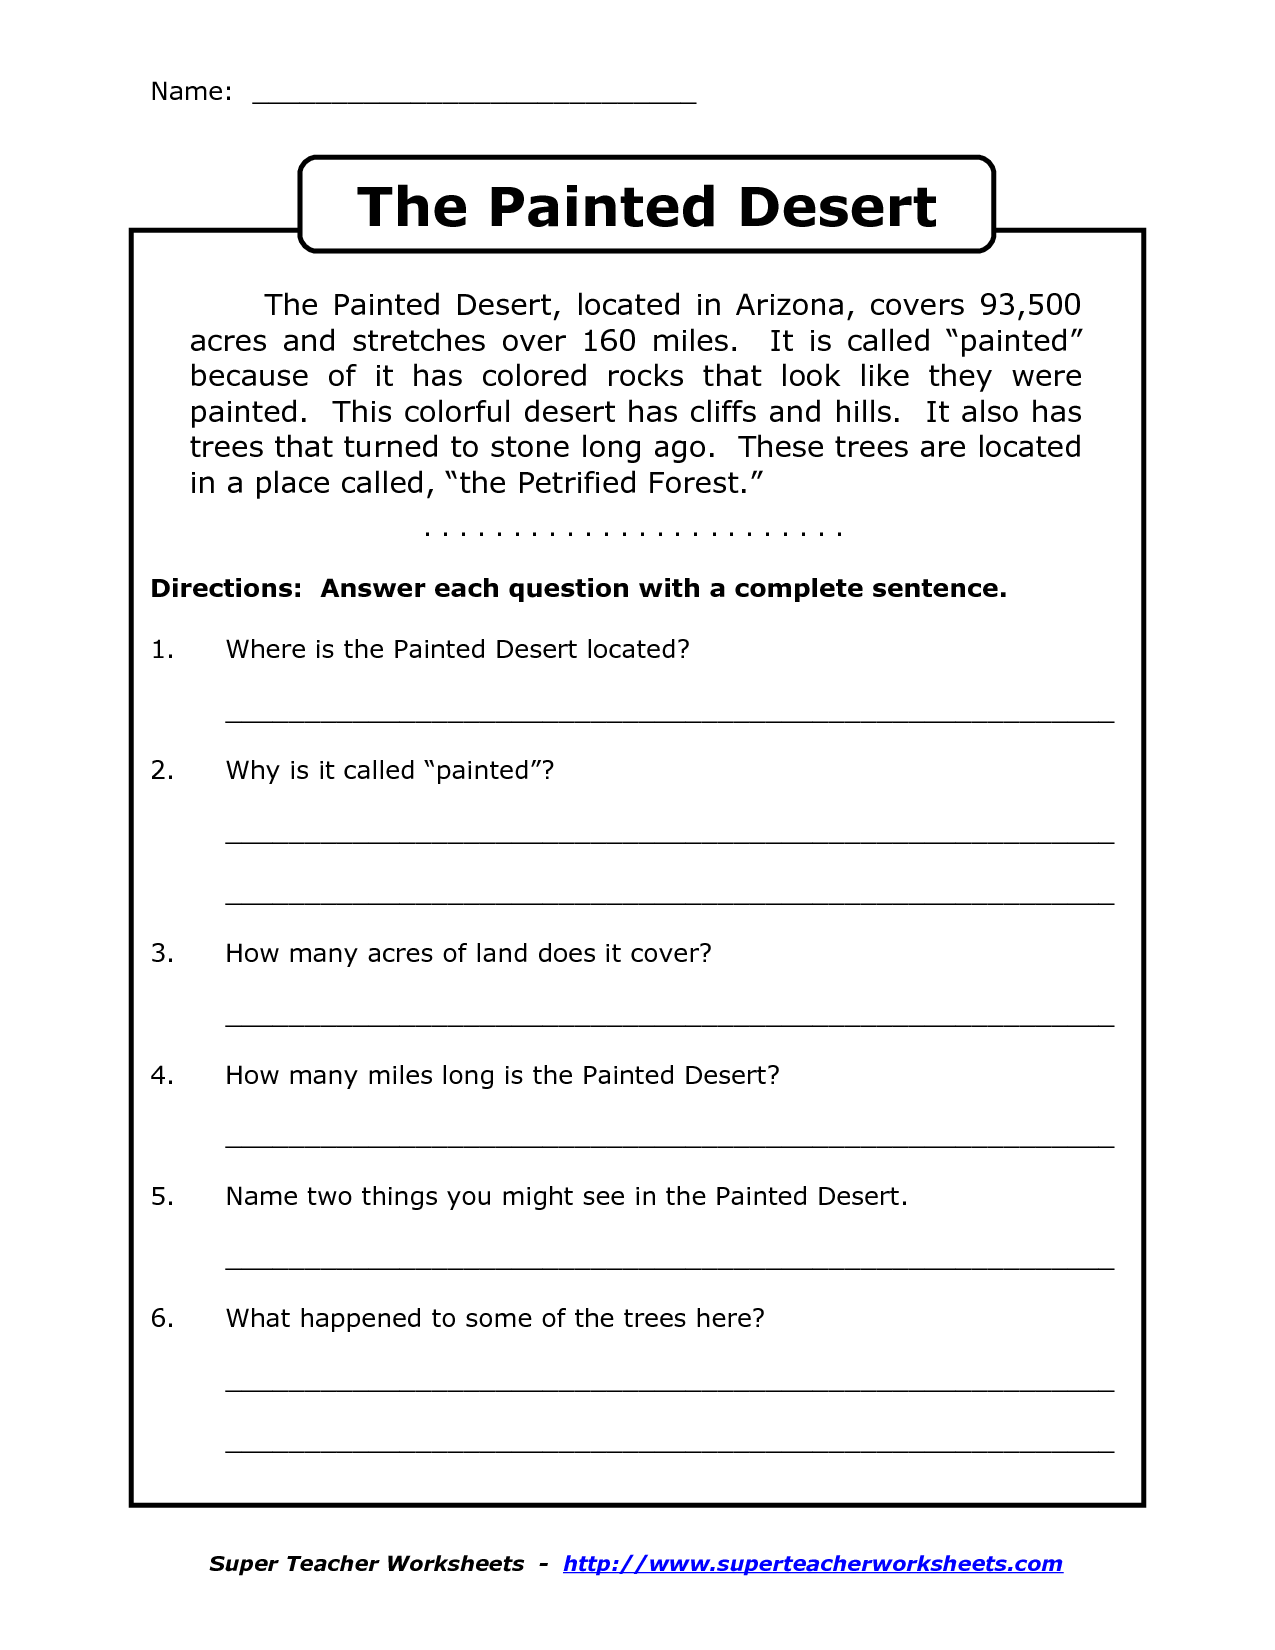 worksheet Nonfiction Reading Comprehension Worksheets reading worksheets for 4th grade comprehension 3 name the painted desert